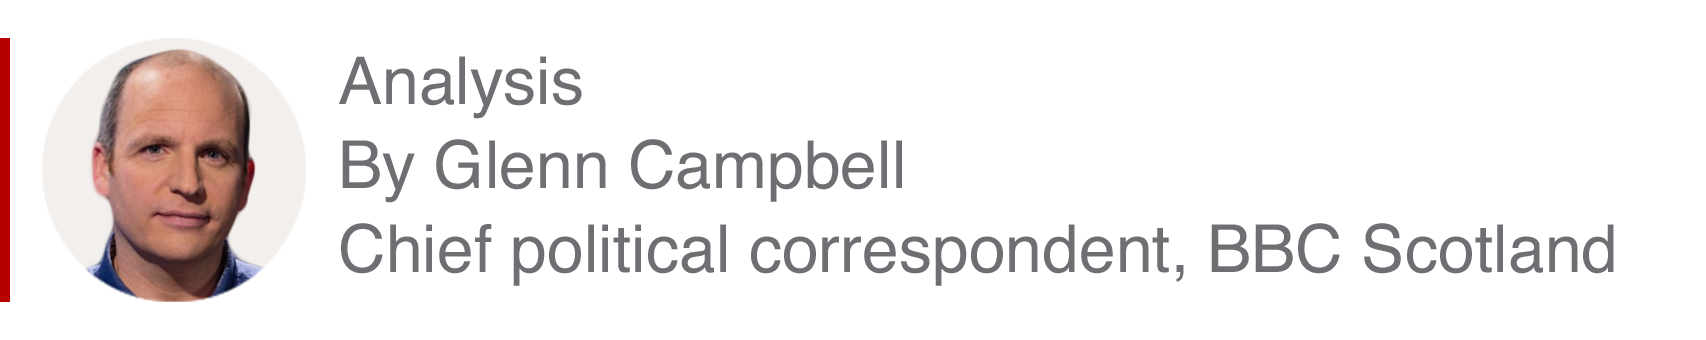 Analysis box by Glenn Campbell, Chief political correspondent, BBC Scotland